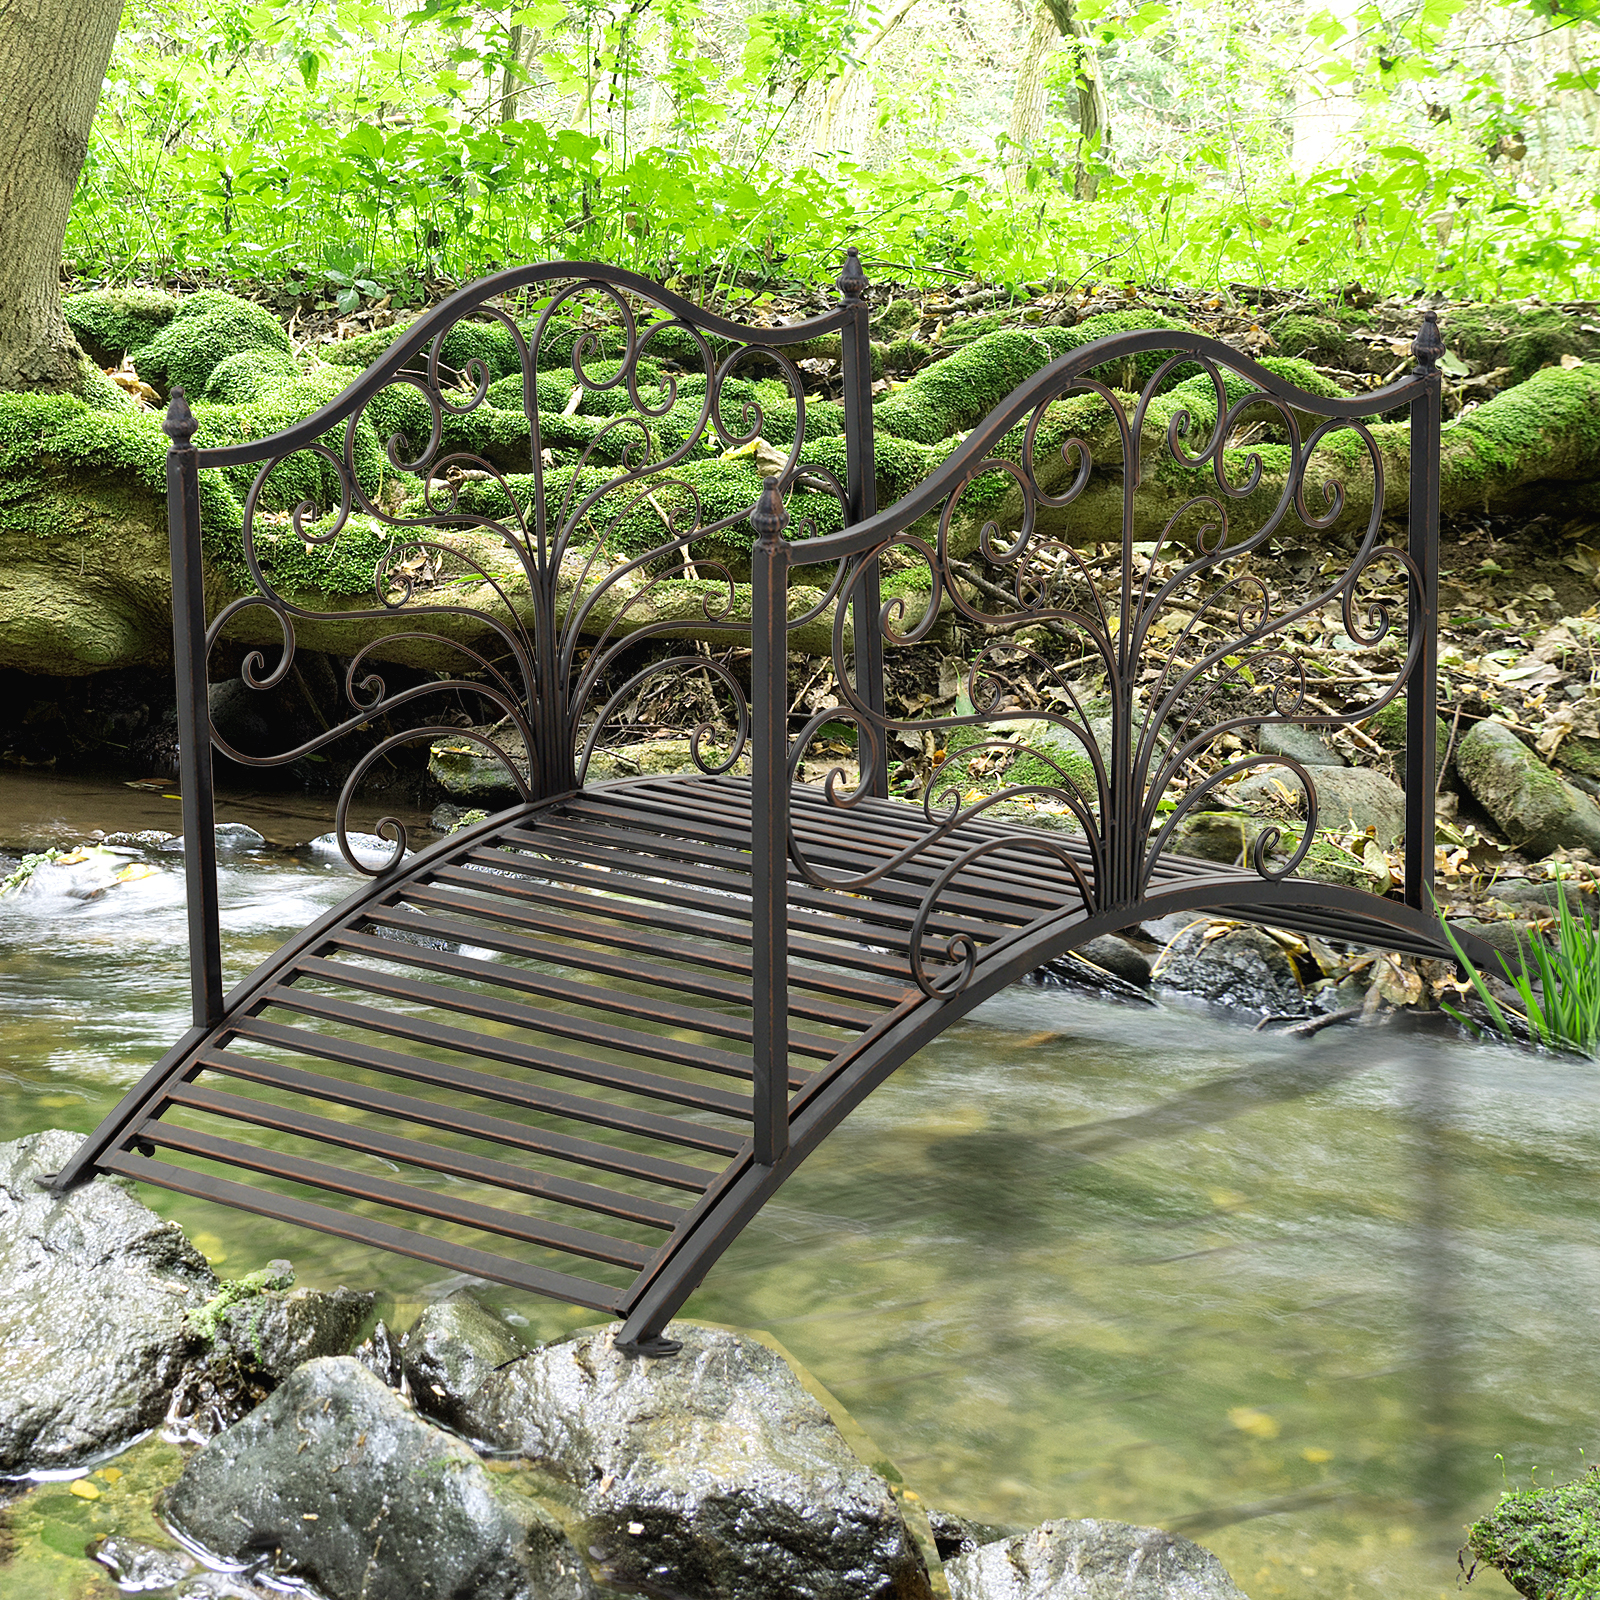 Outsunny 4' Arched Outdoor Metal Decorative Fish Pond